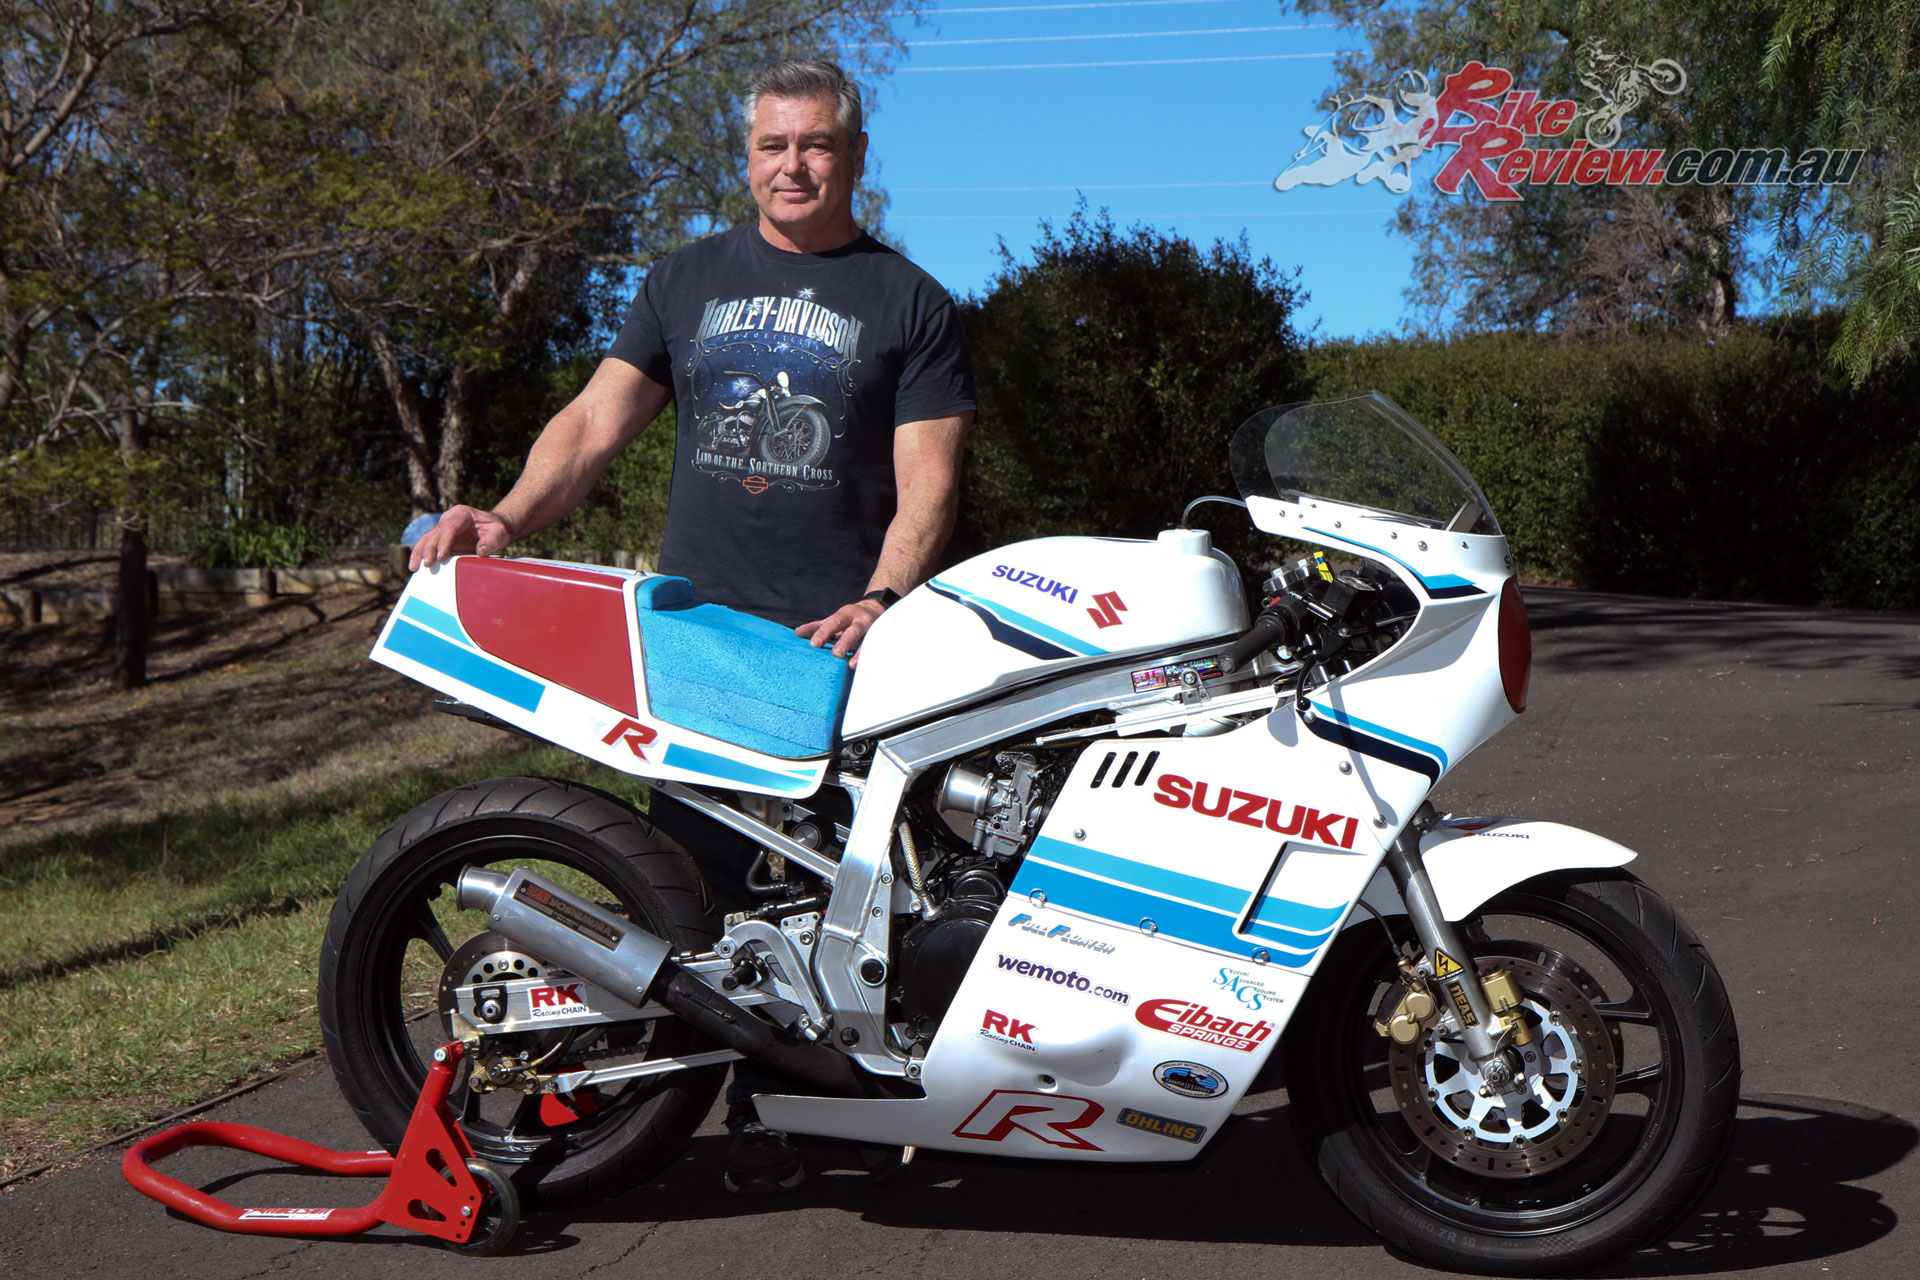 Paul with his 1987 Suzuki GSX-R1100 Classic Racer